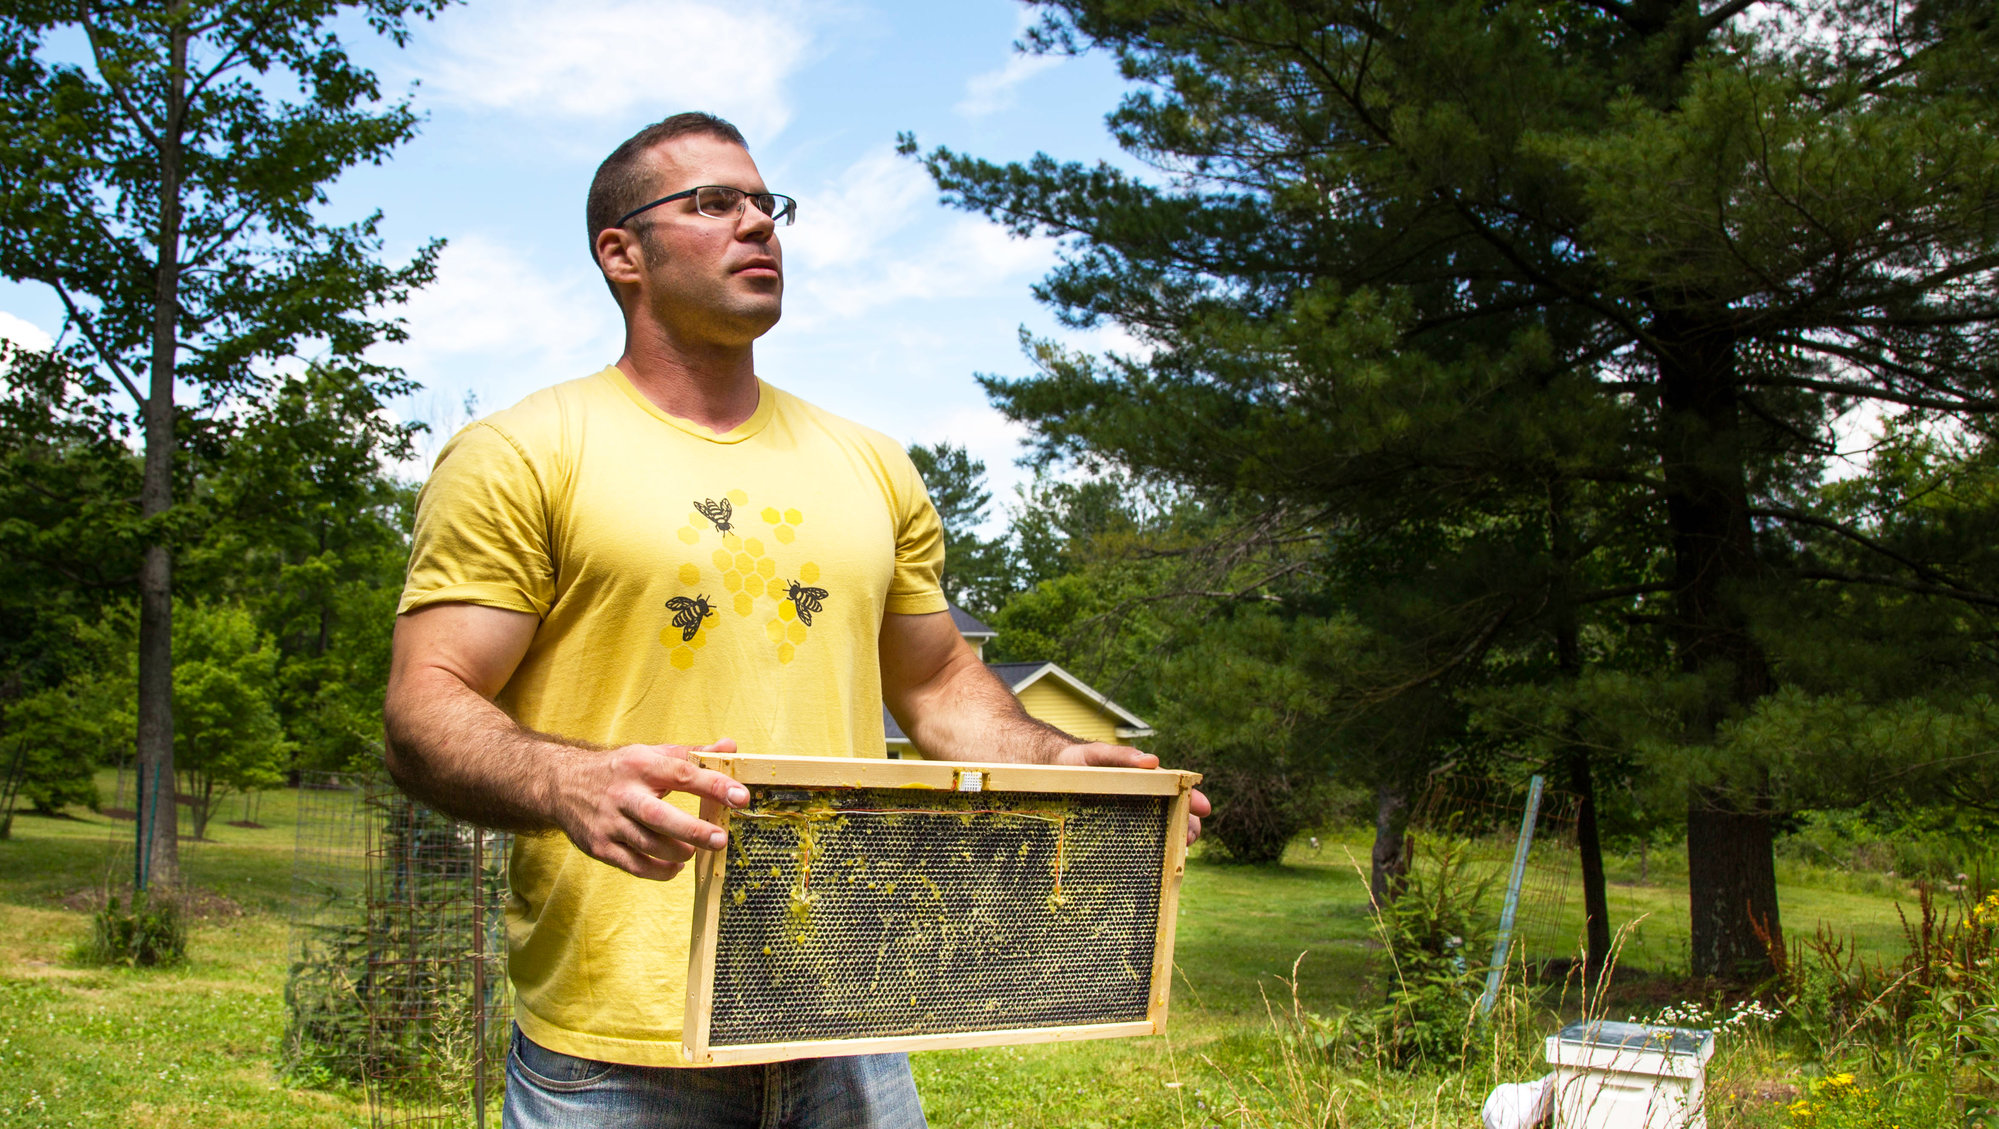 Nathan Oakes, above, is co-owner of Combplex, an Ithaca-based startup that has created a technological pest-control solution for honeybee colonies. Combplex is one of four Ithaca startups included in the 18 finalists of this year's Grow-NY competition.